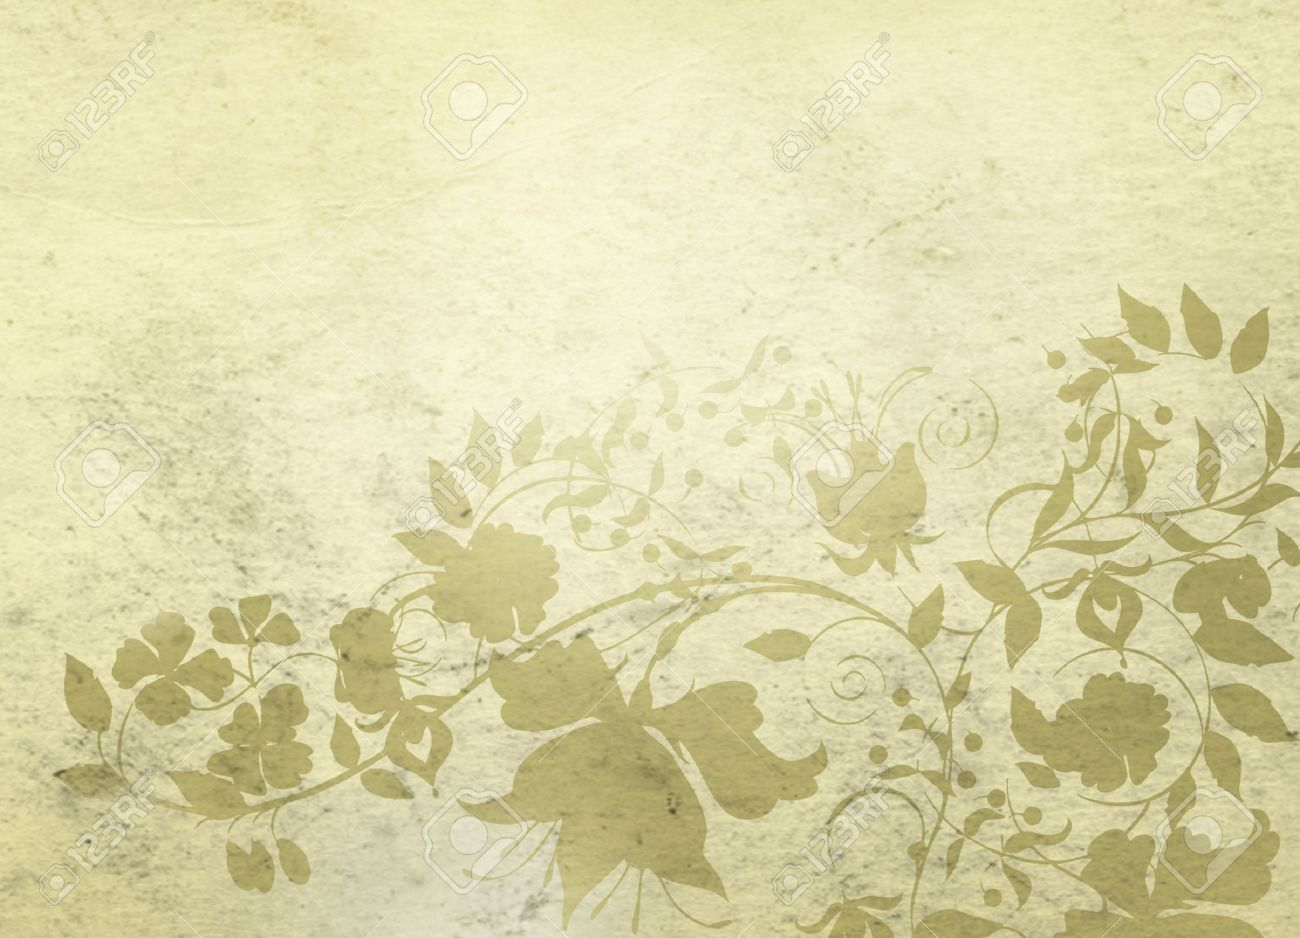 Classical Background With Floral Decorative Pattern Stock Photo 1300x938